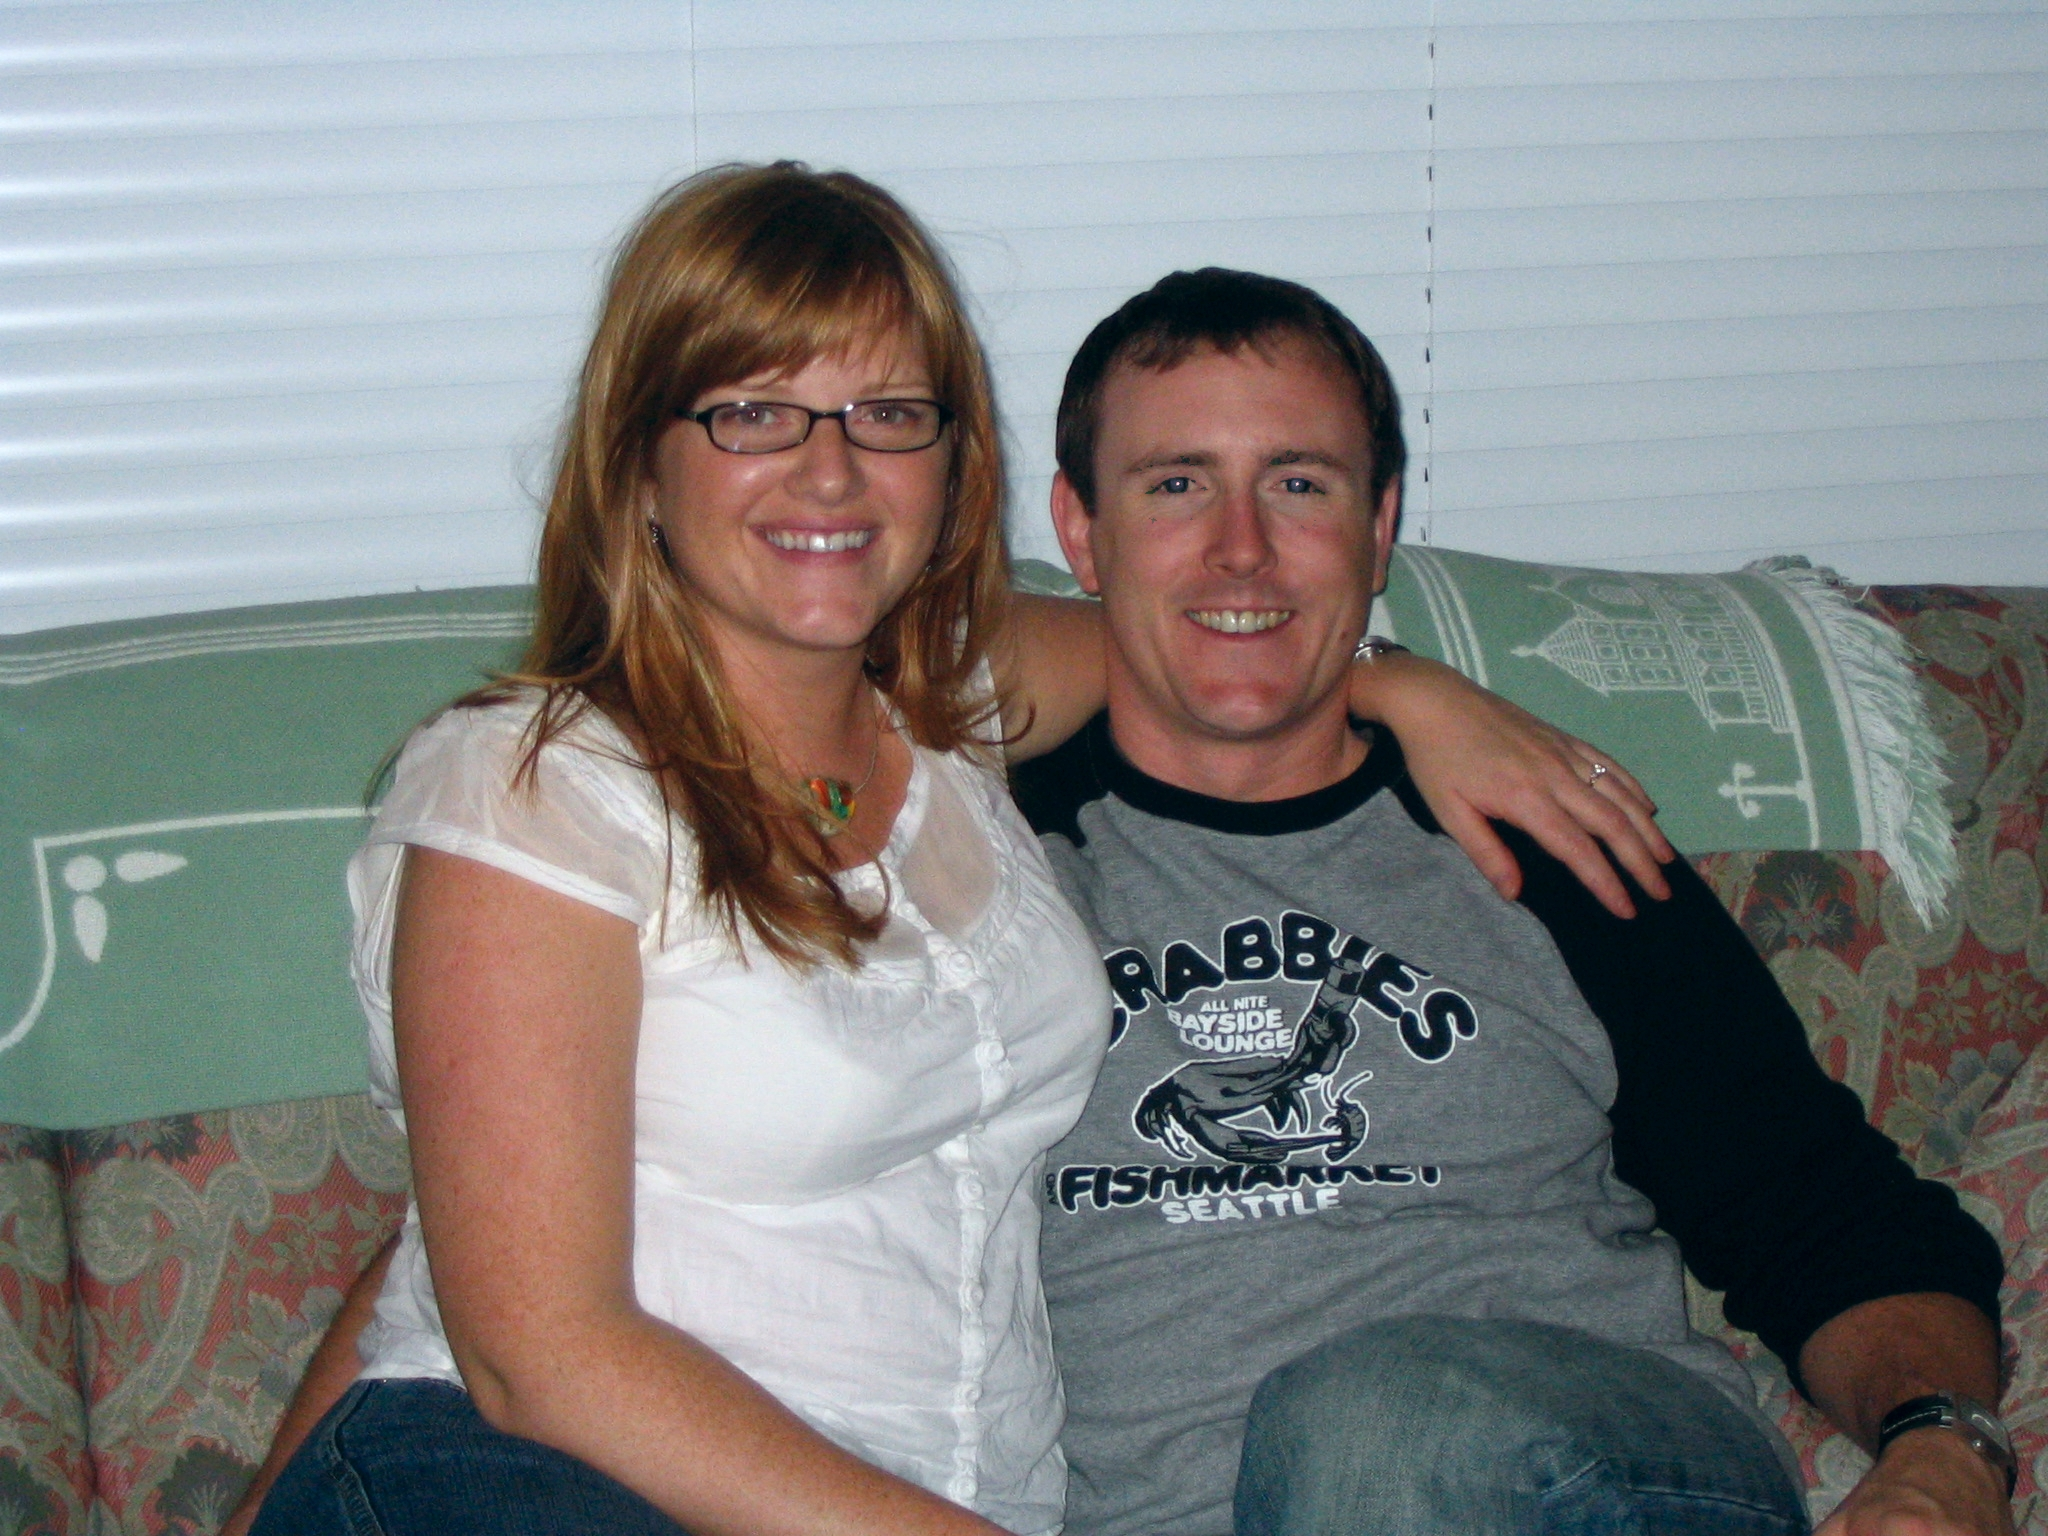 2005 days before leaving Kelowna on our 10 year adventure